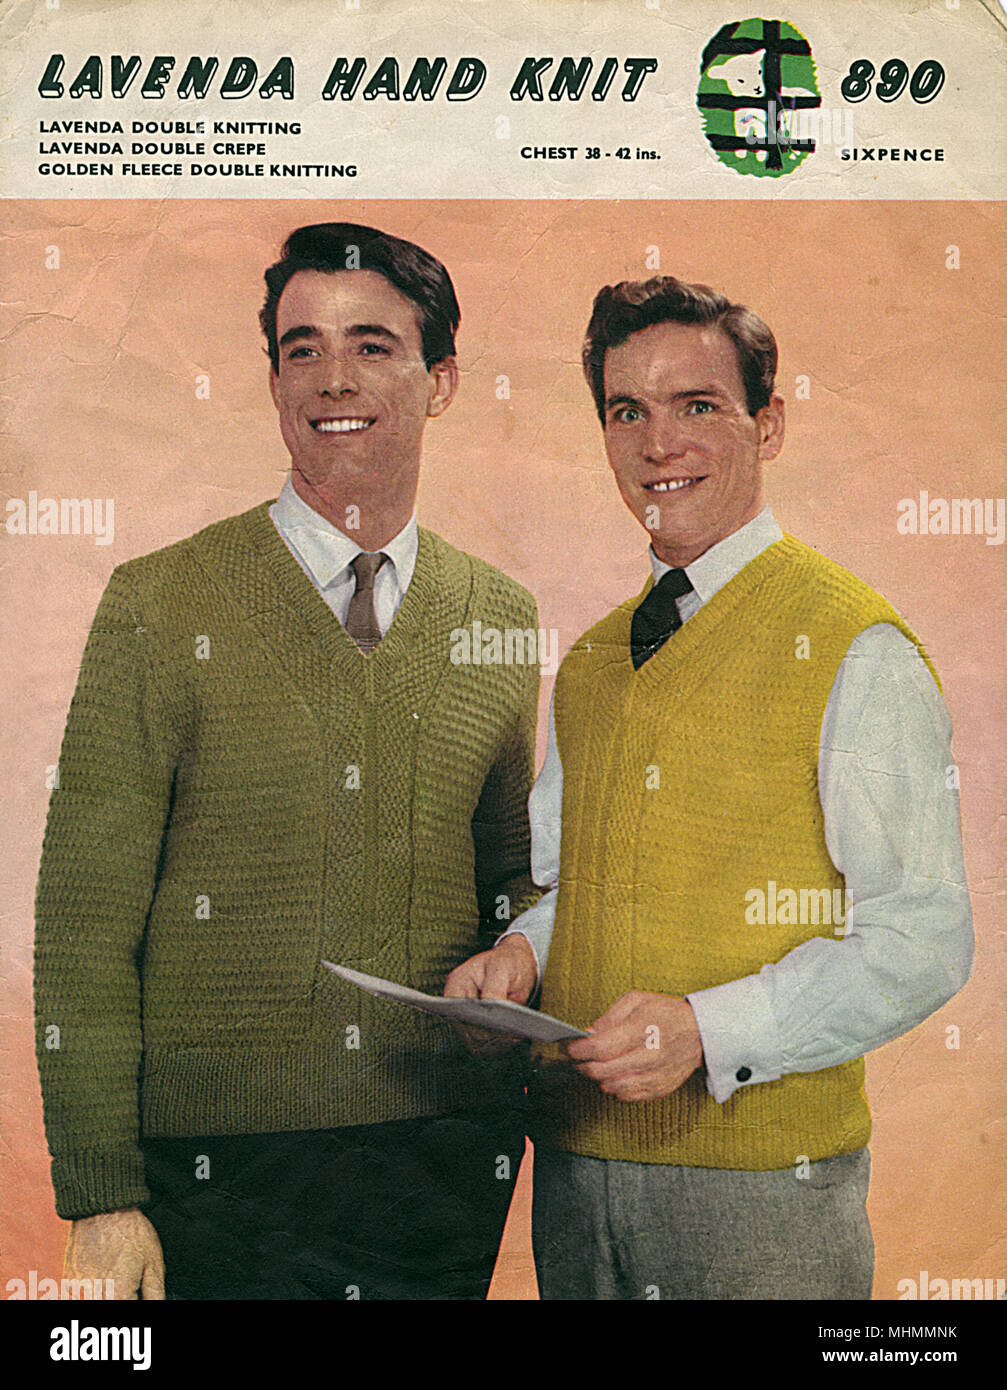 Front cover of a 1950s knitting pattern featuring two dapper chaps wearing hand knitted pullovers.     Date: c.1953 - Stock Image